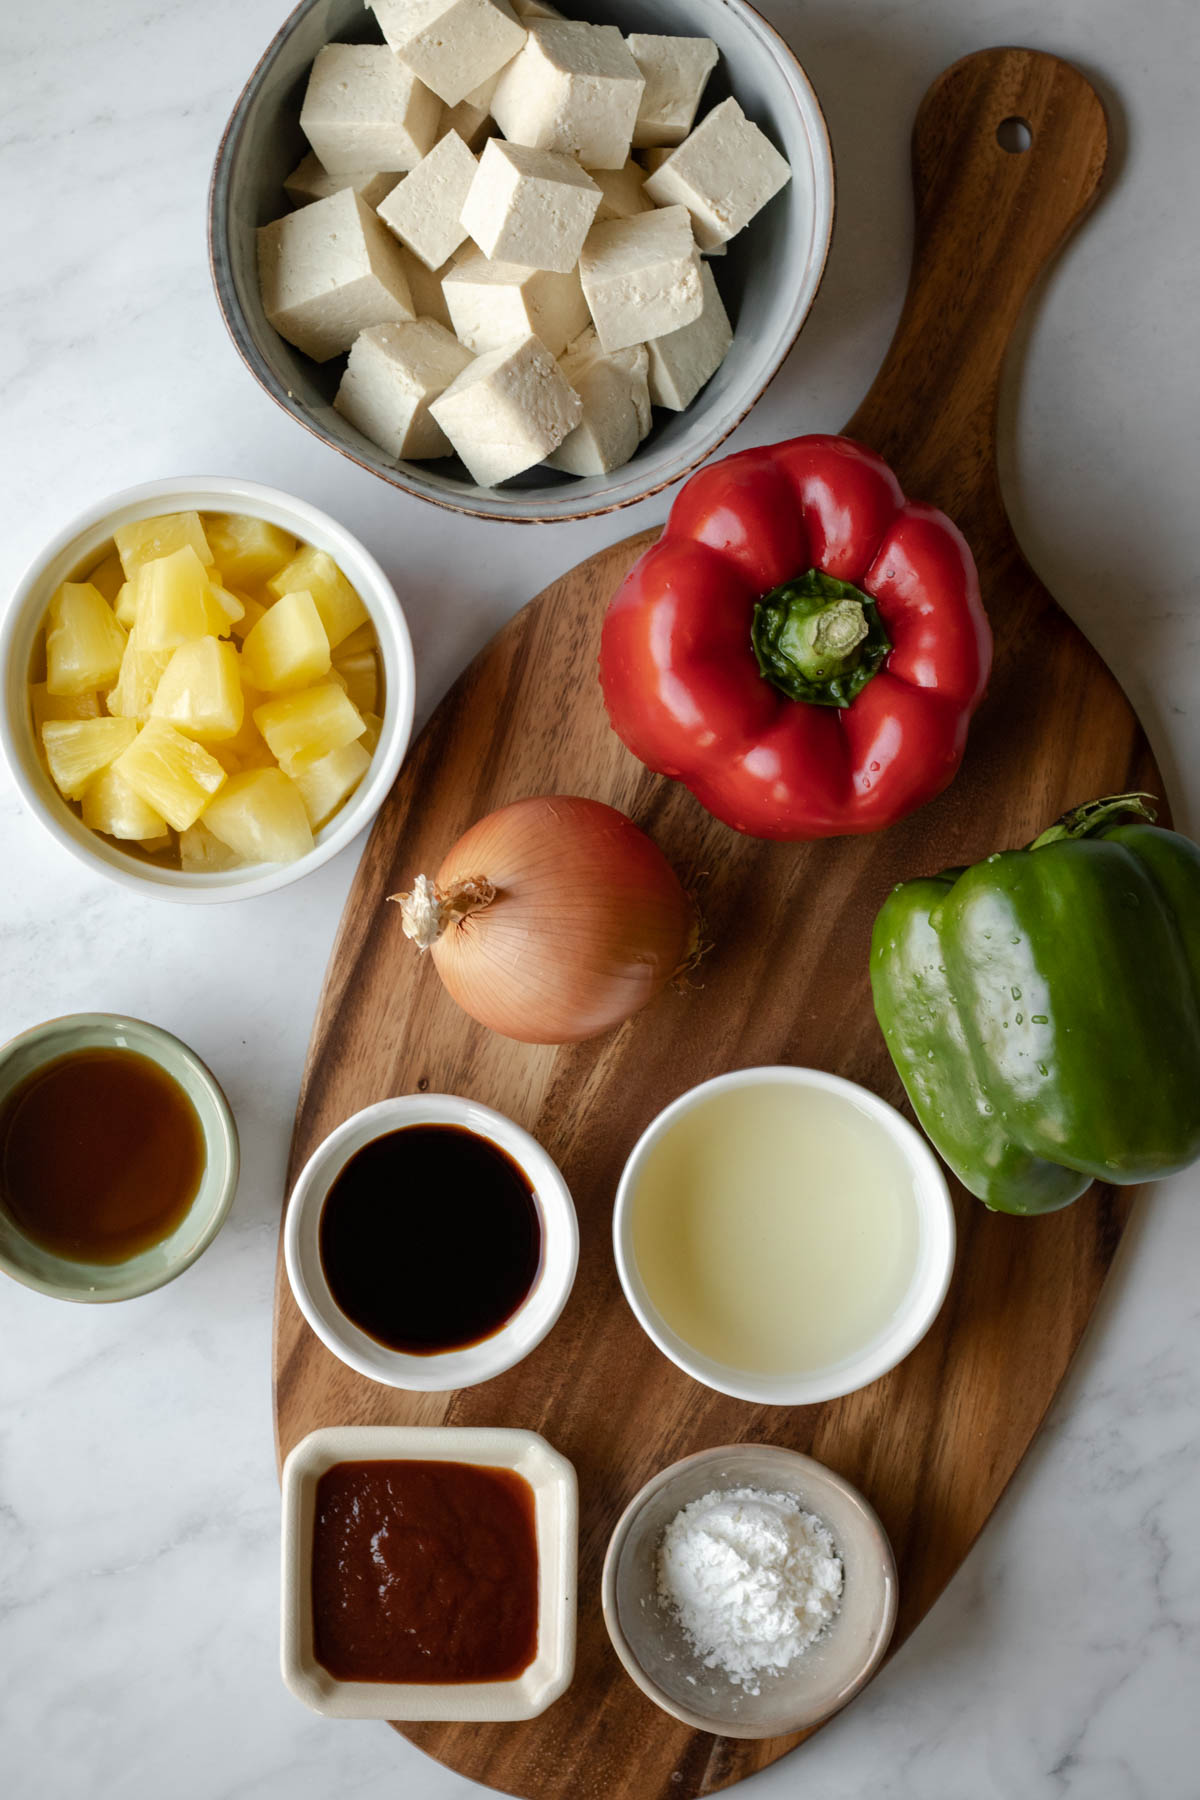 ingredients laid out on a cutting board - tofu, pineapple, red and green bell peppers, onion, tamari, ketchup, maple syrup, rice vinegar, corn starch